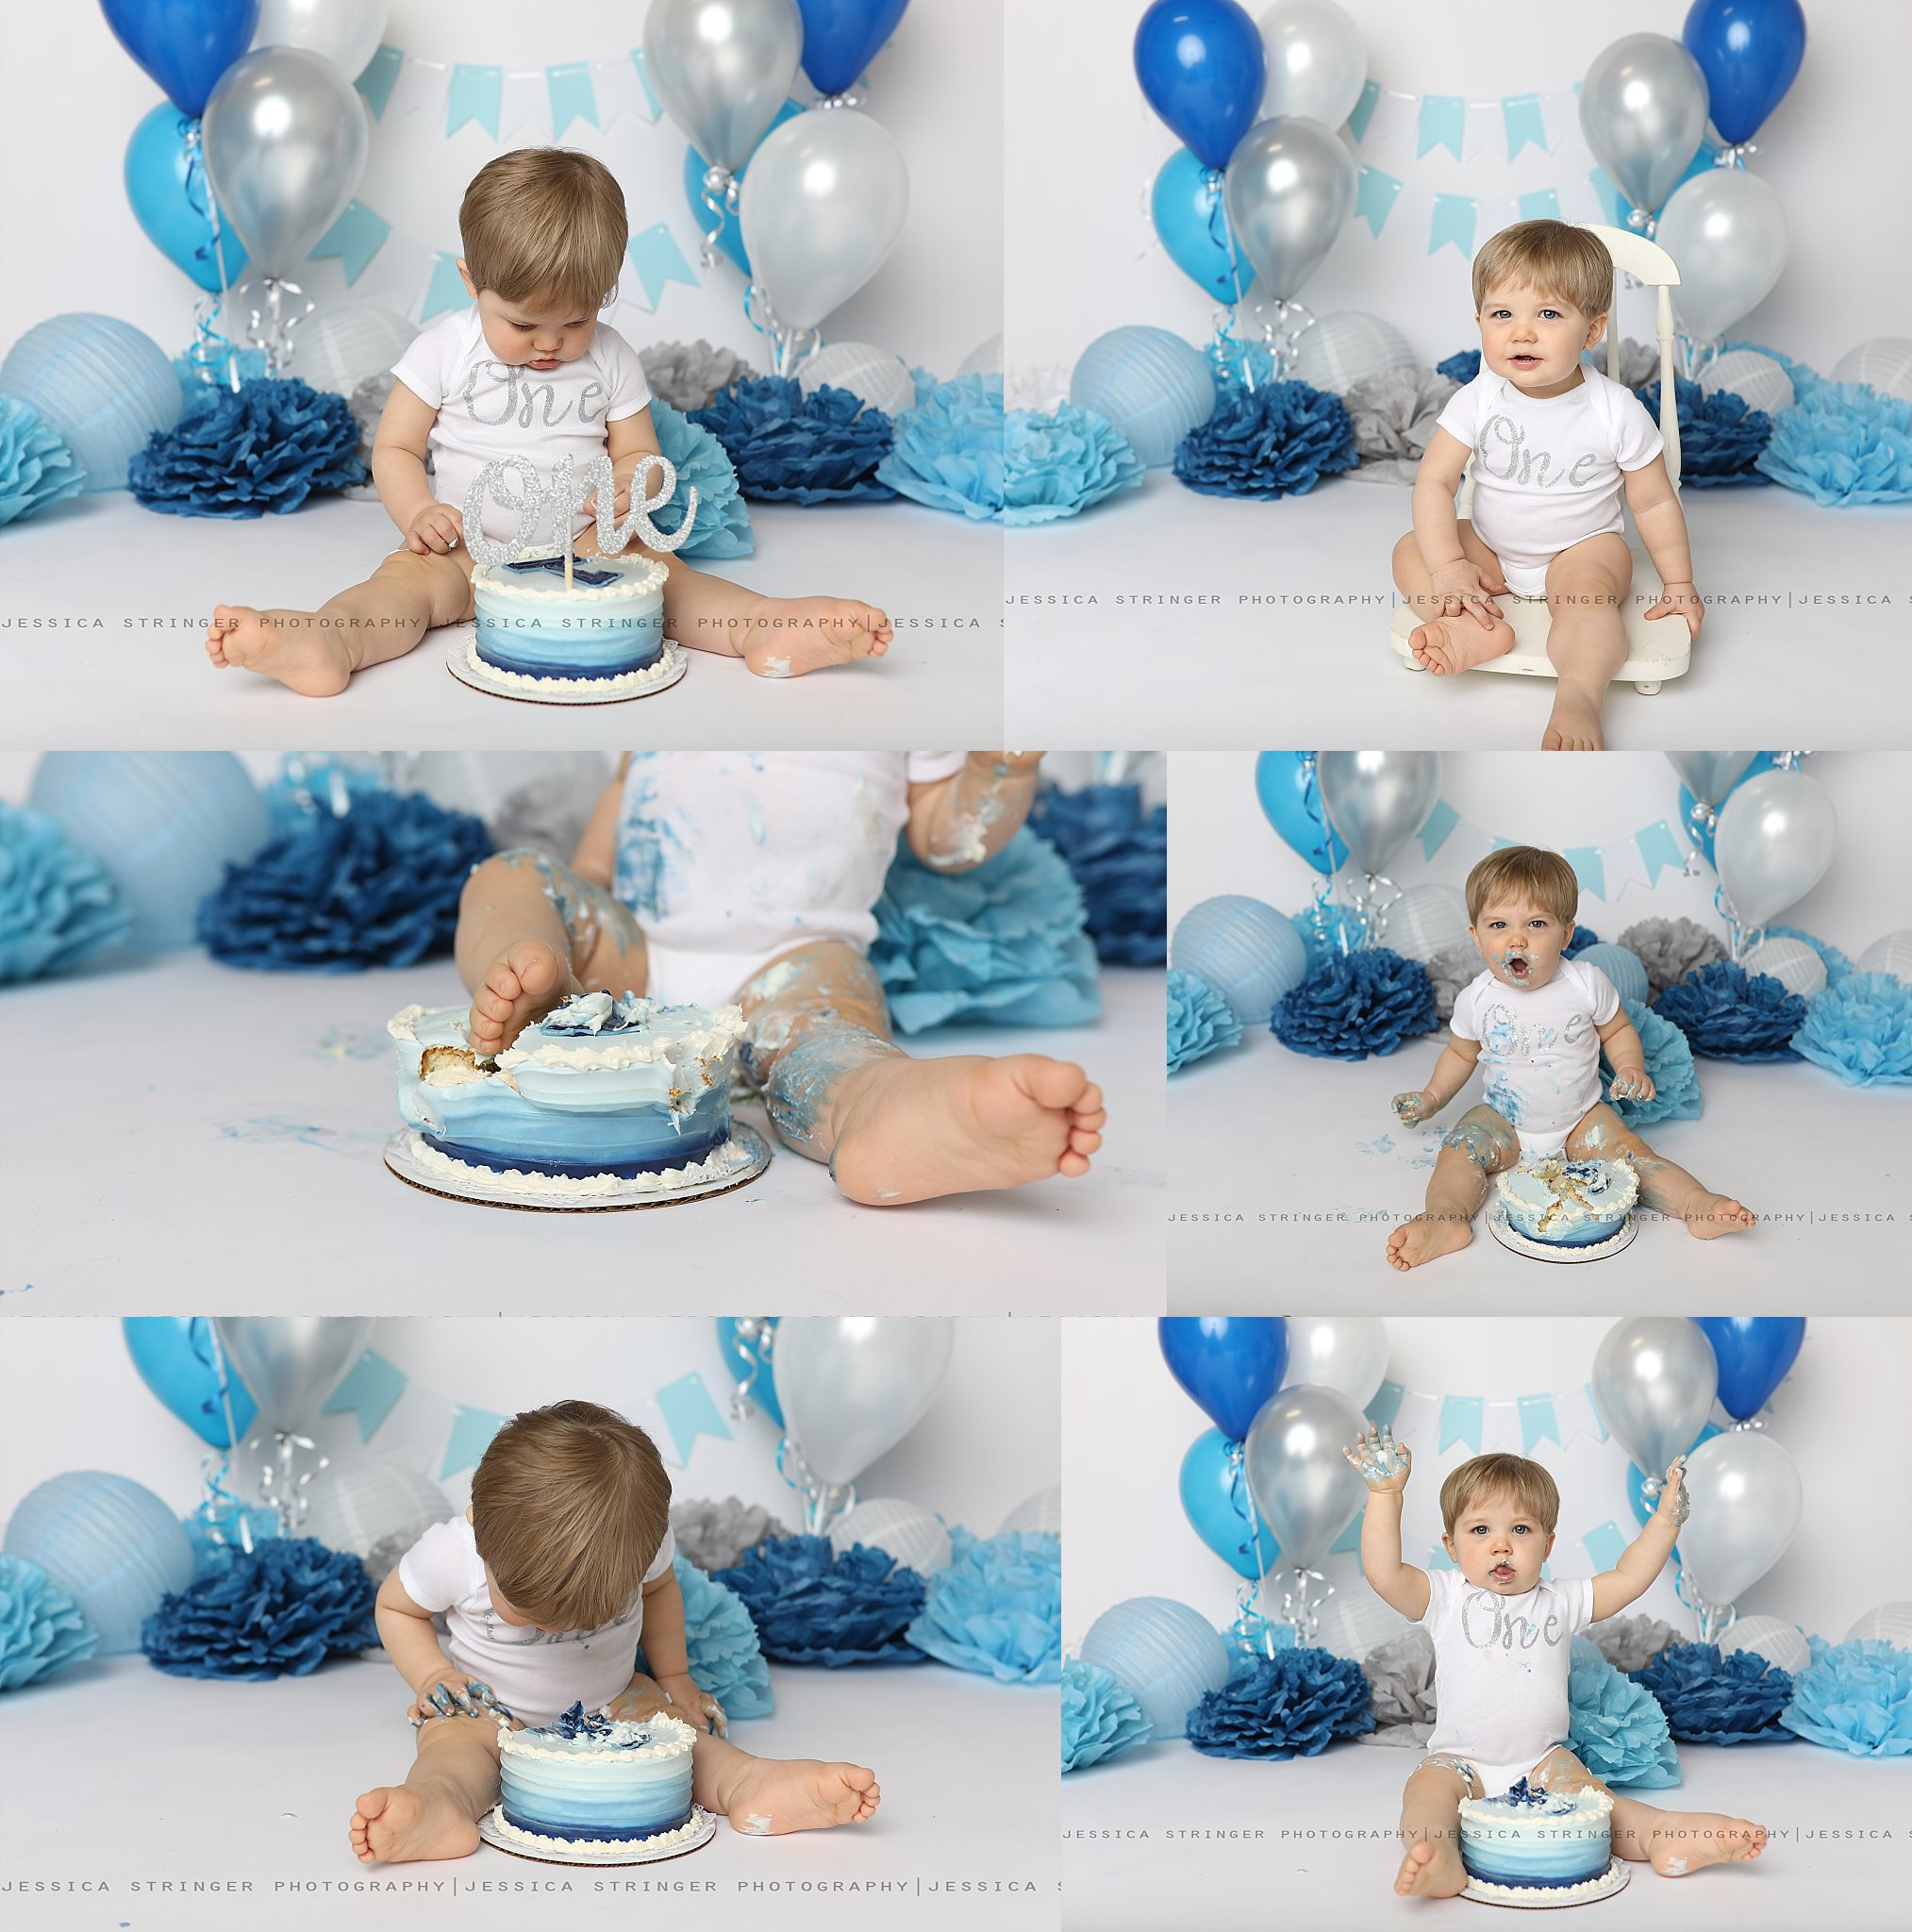 And ofcourse the cake smash! Noah loved his cake! <3